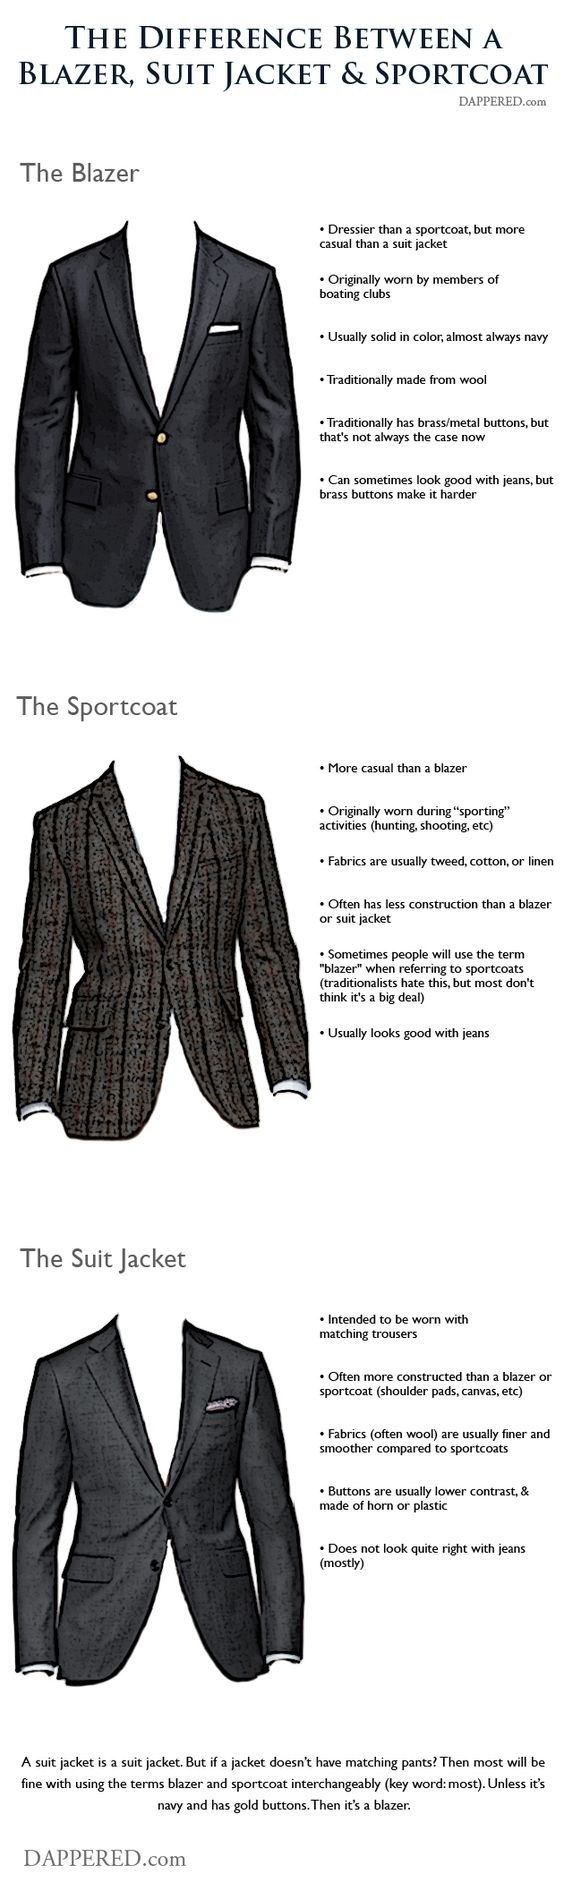 The difference is I don't care for suit jackets.  At all!